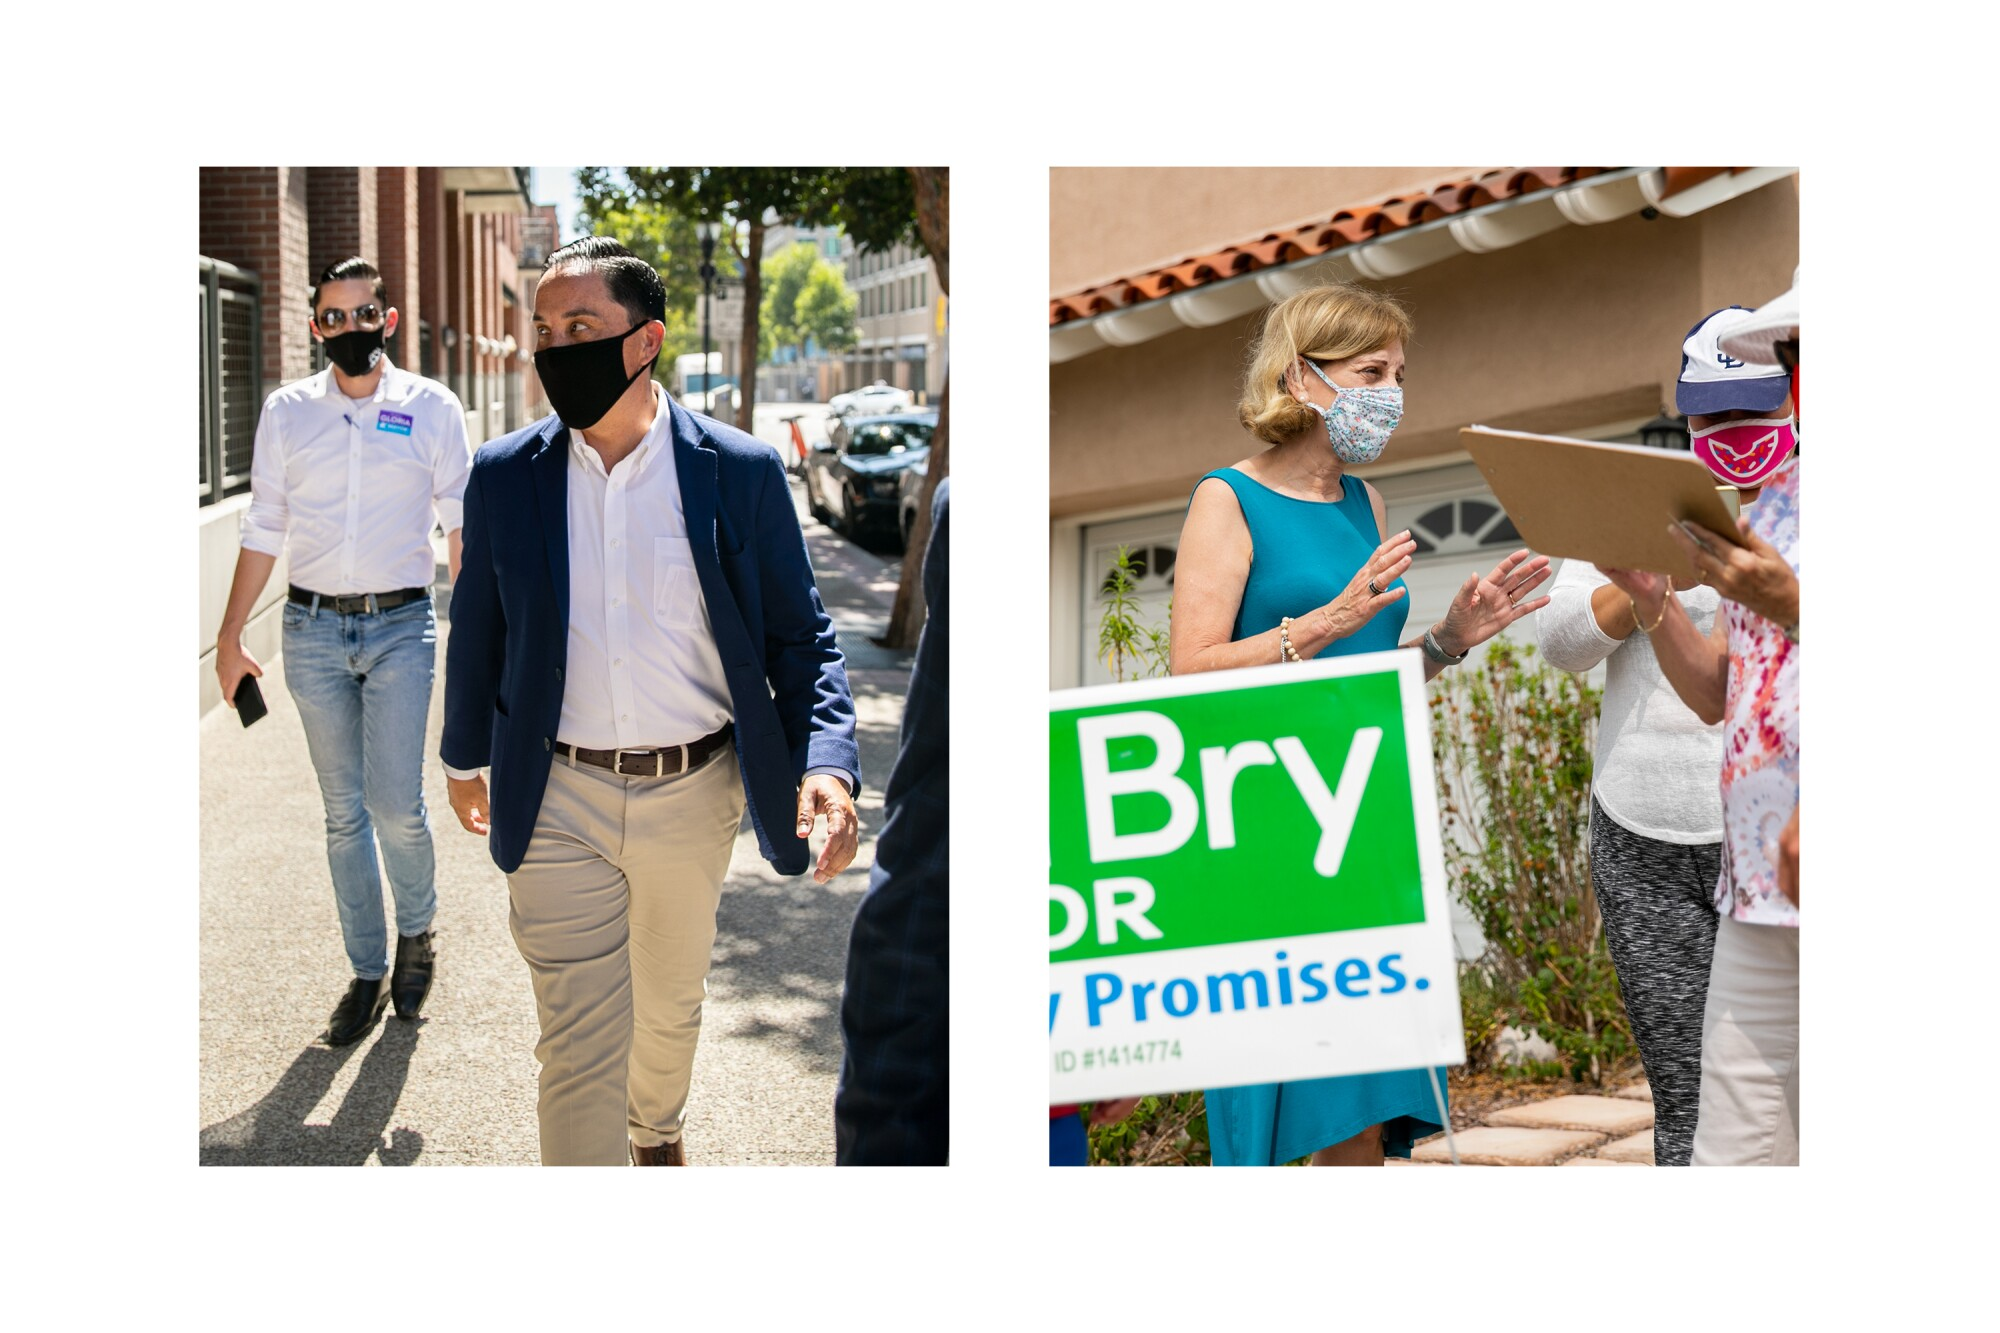 Todd Gloria and Barbara Bry are running for mayor of San Diego.